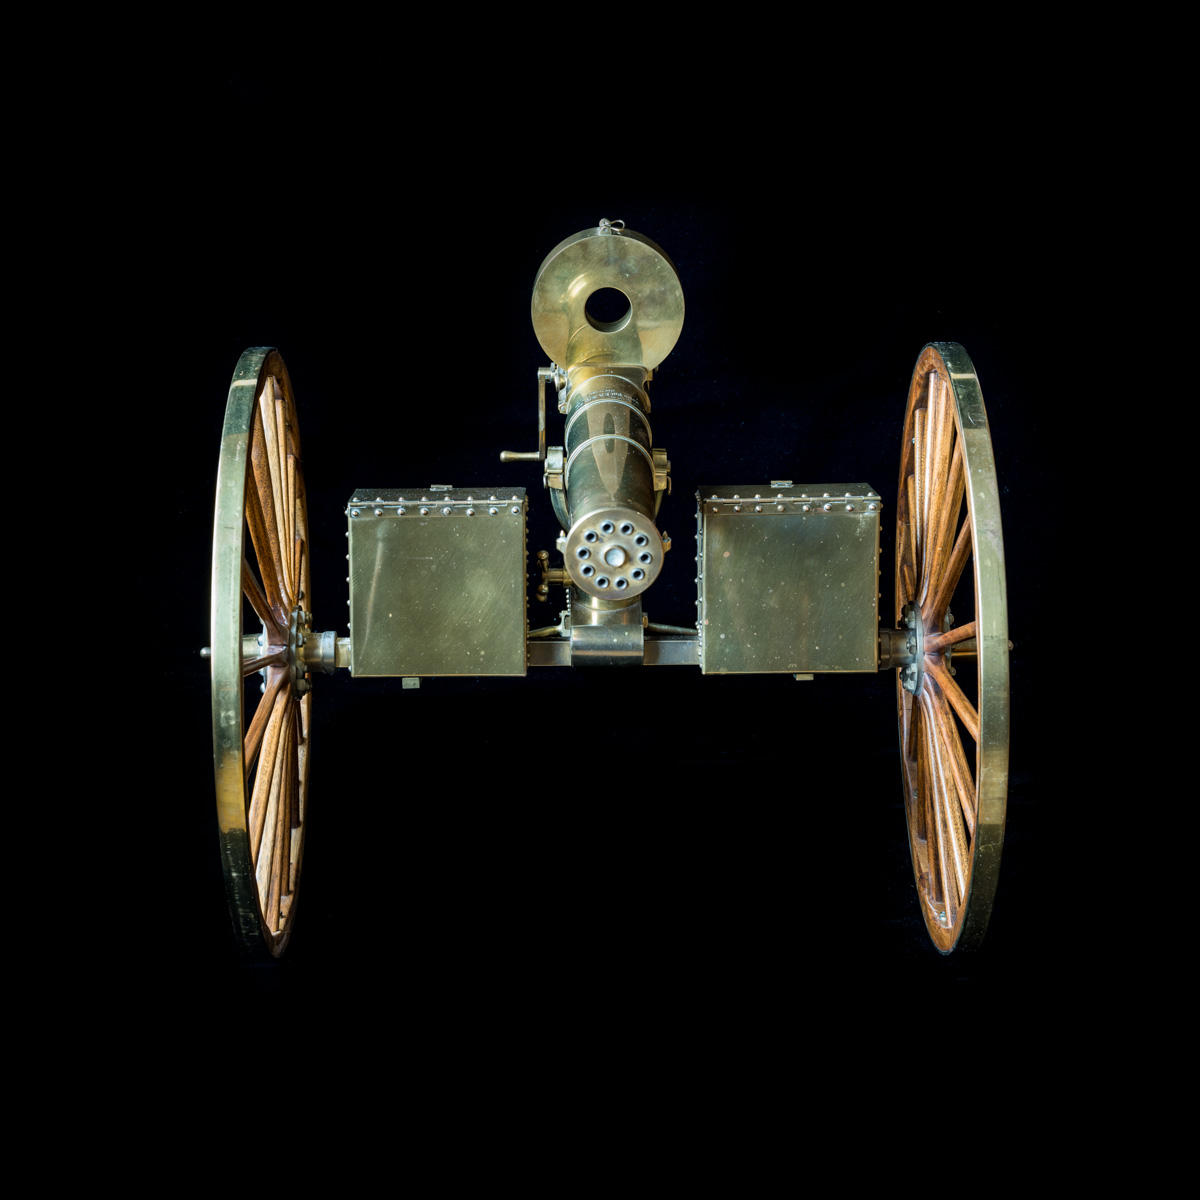 Gatling Gun 1-3rd size model-8